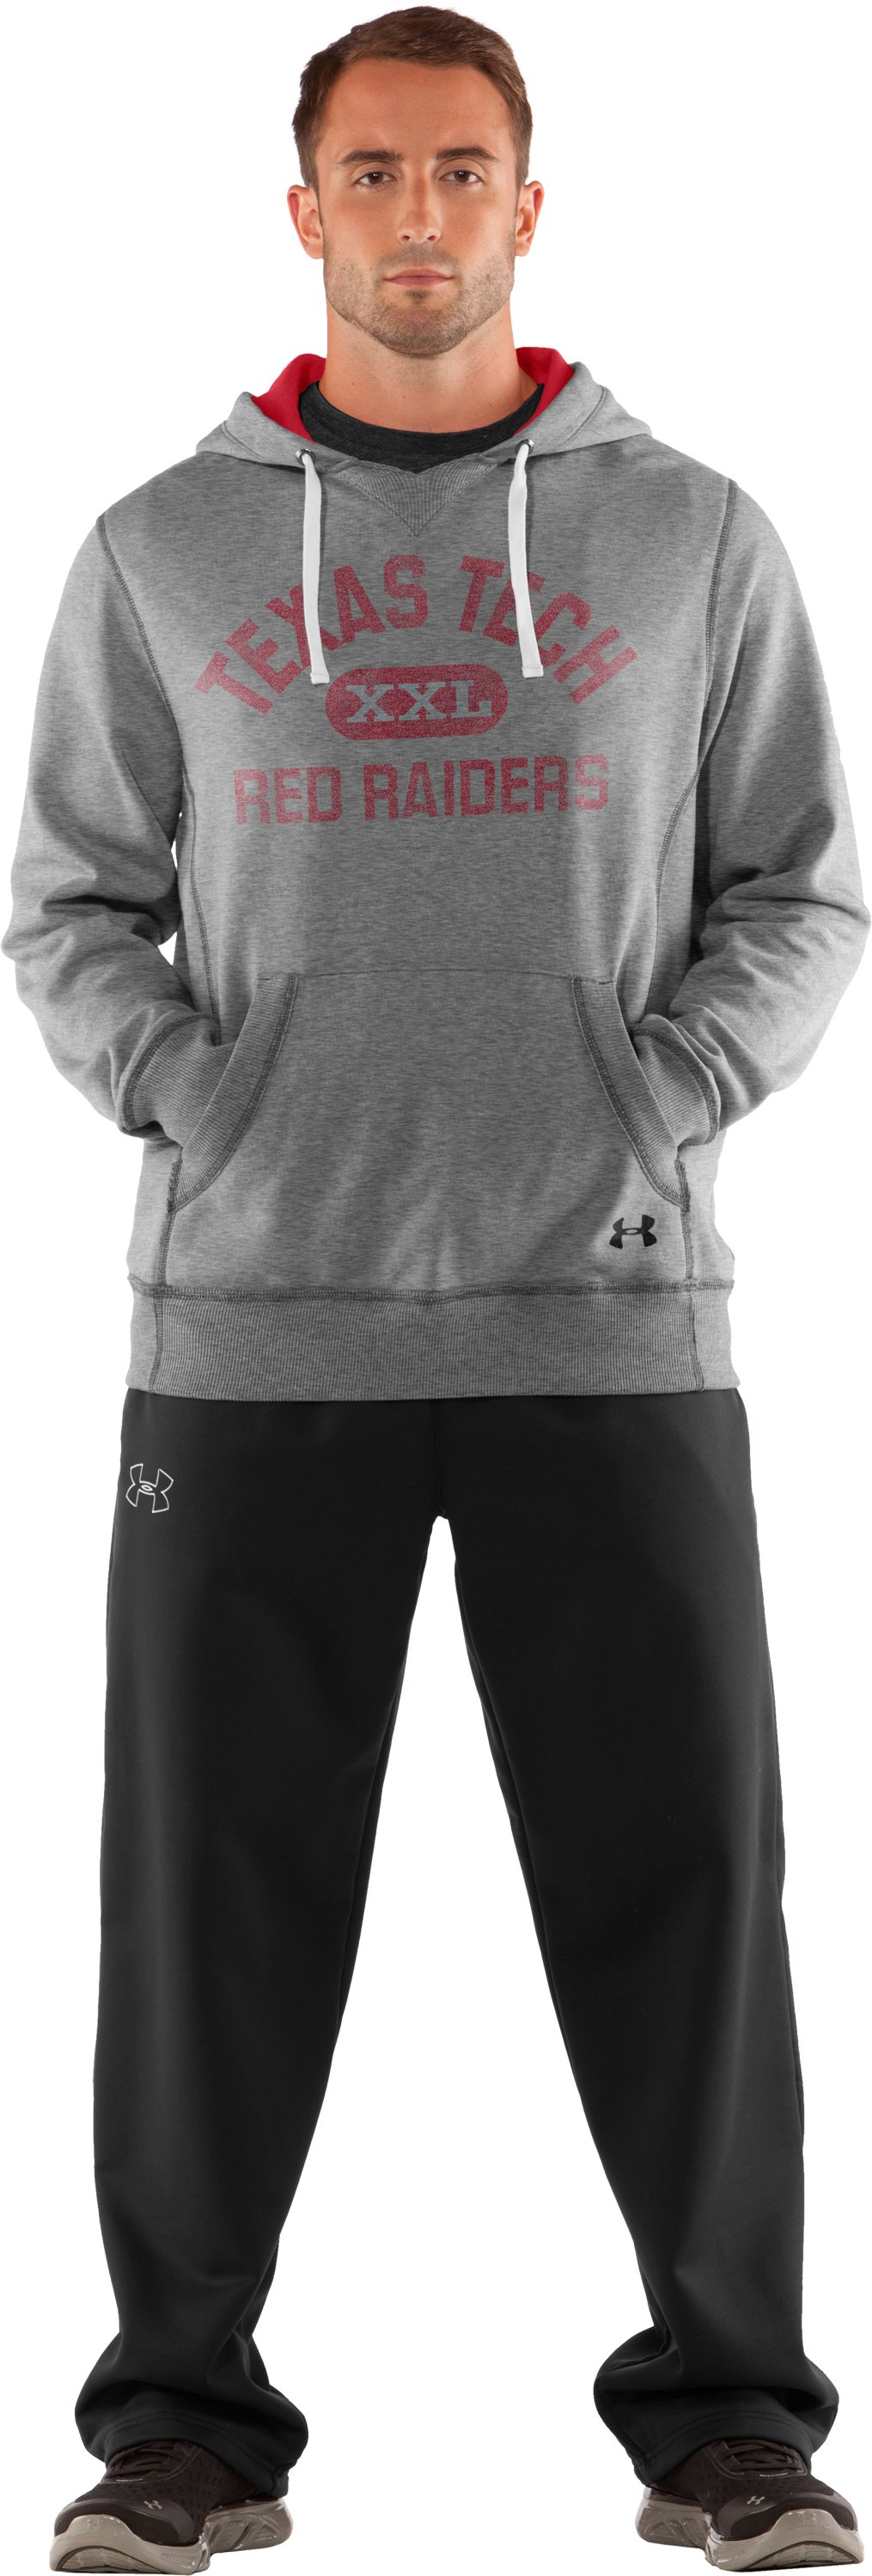 Men's Texas Tech Under Armour® Legacy Hoodie, True Gray Heather, Front